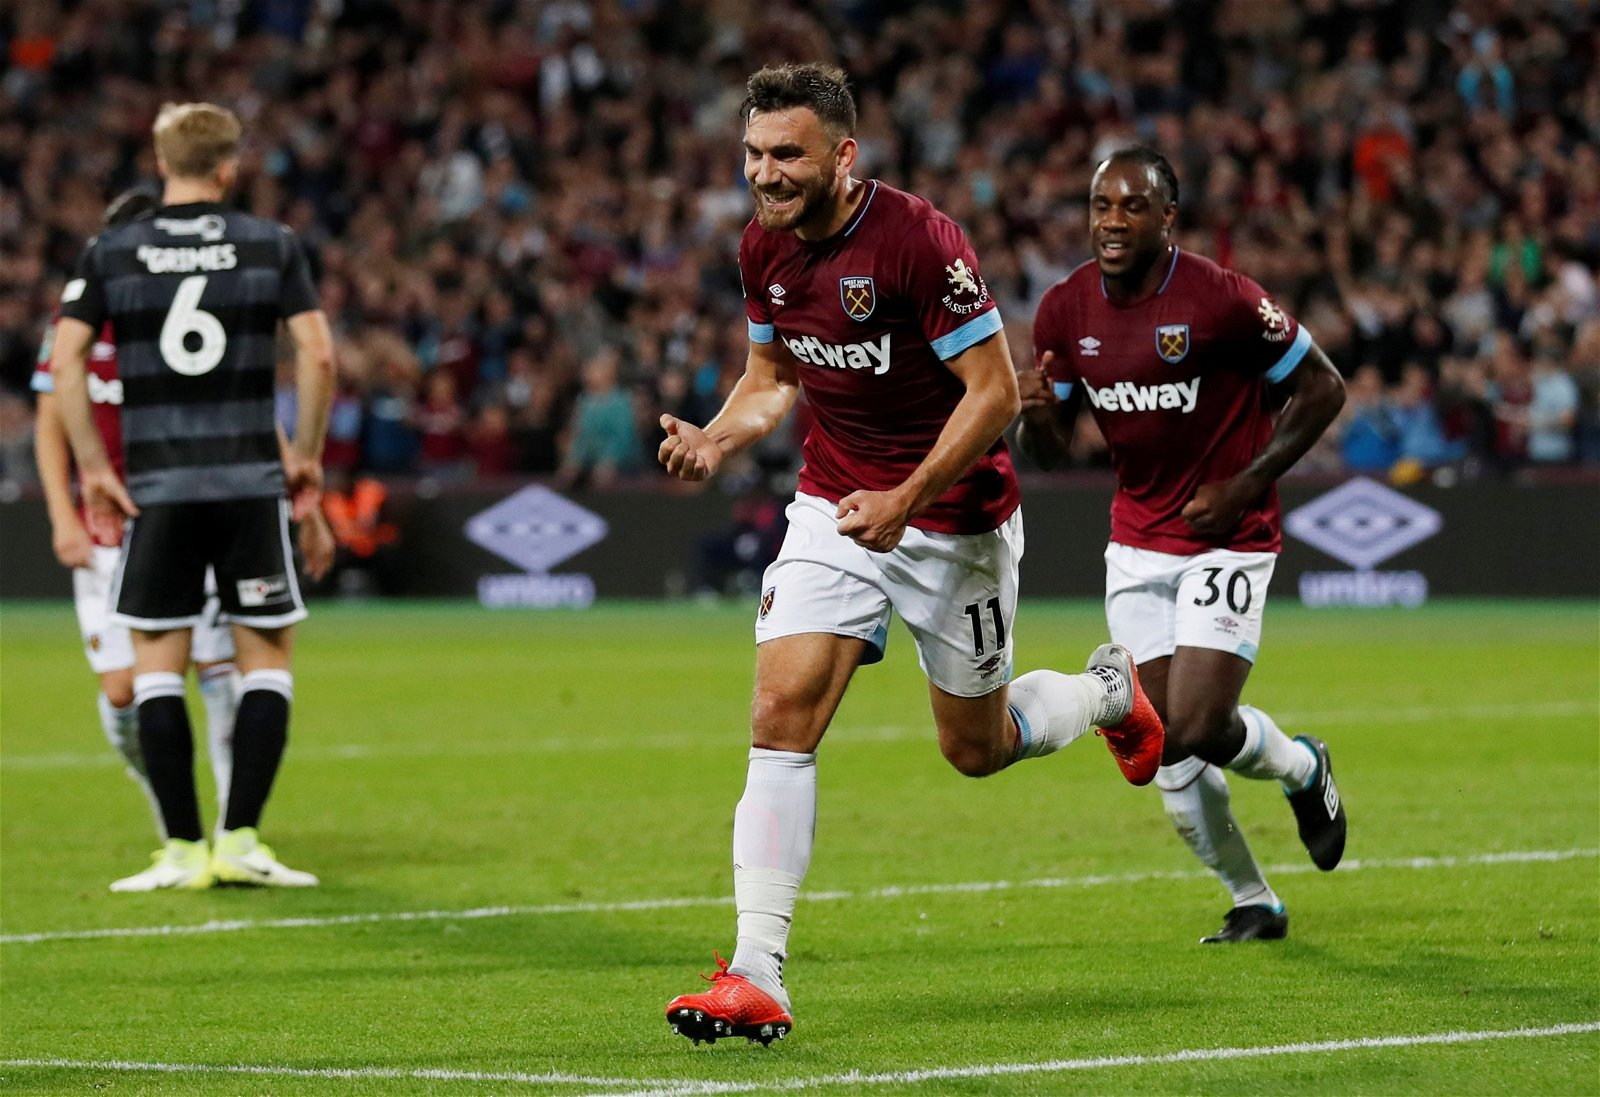 West Ham winger Robert Snodgrass celebrates his first goal against Macclesfield Town - Celtic can soon snap up £40k-p/w EPL powerhouse for £0, he's what Lennon is missing – opinion